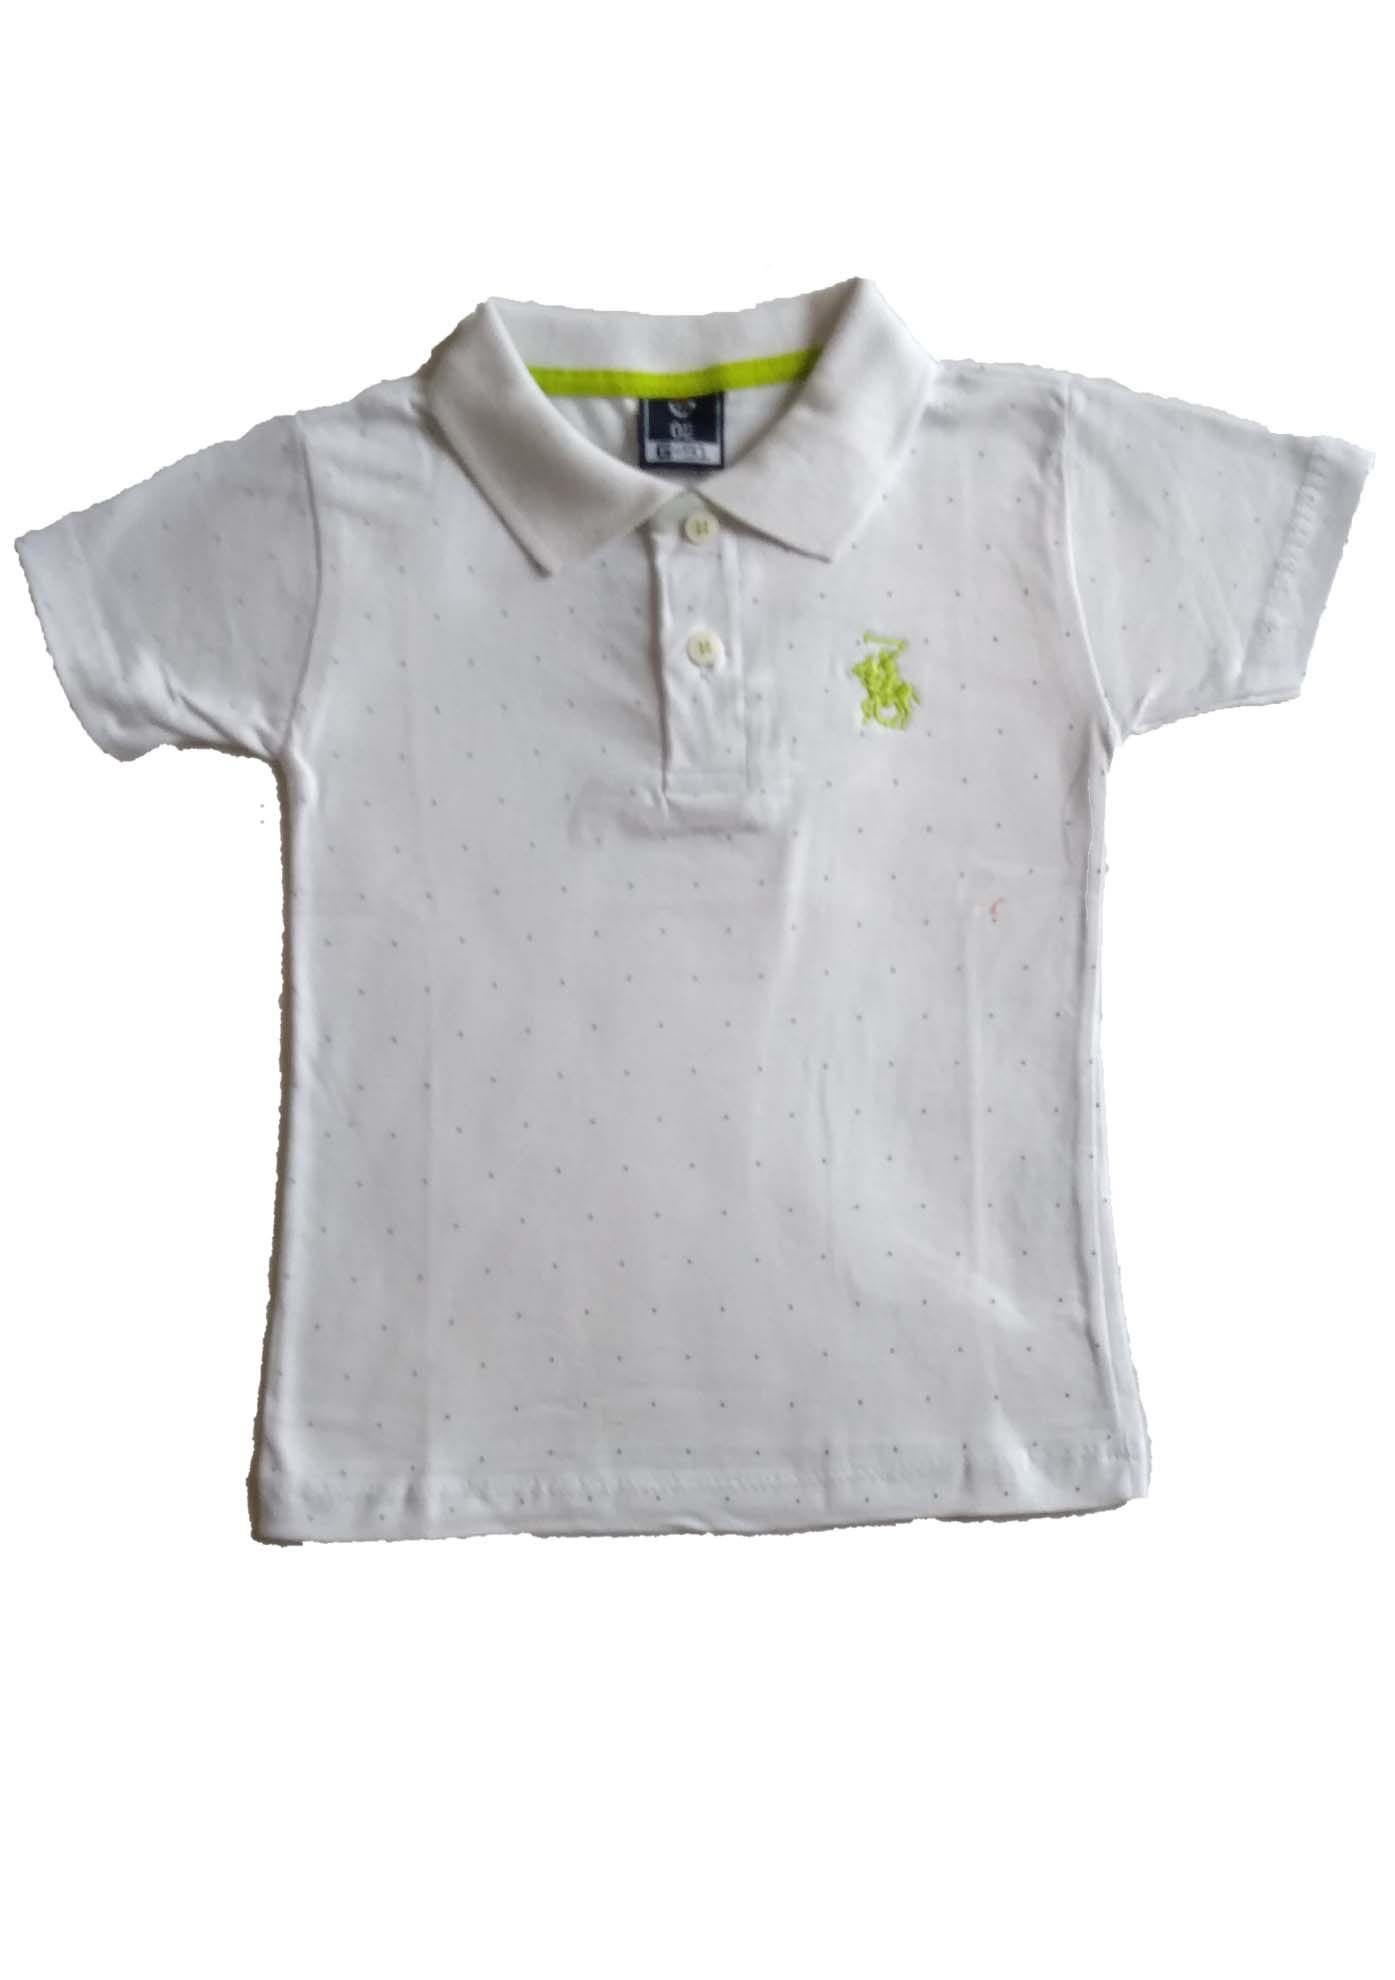 CAMISETA POLO ESTAMPADA/BORDADO BRANCA